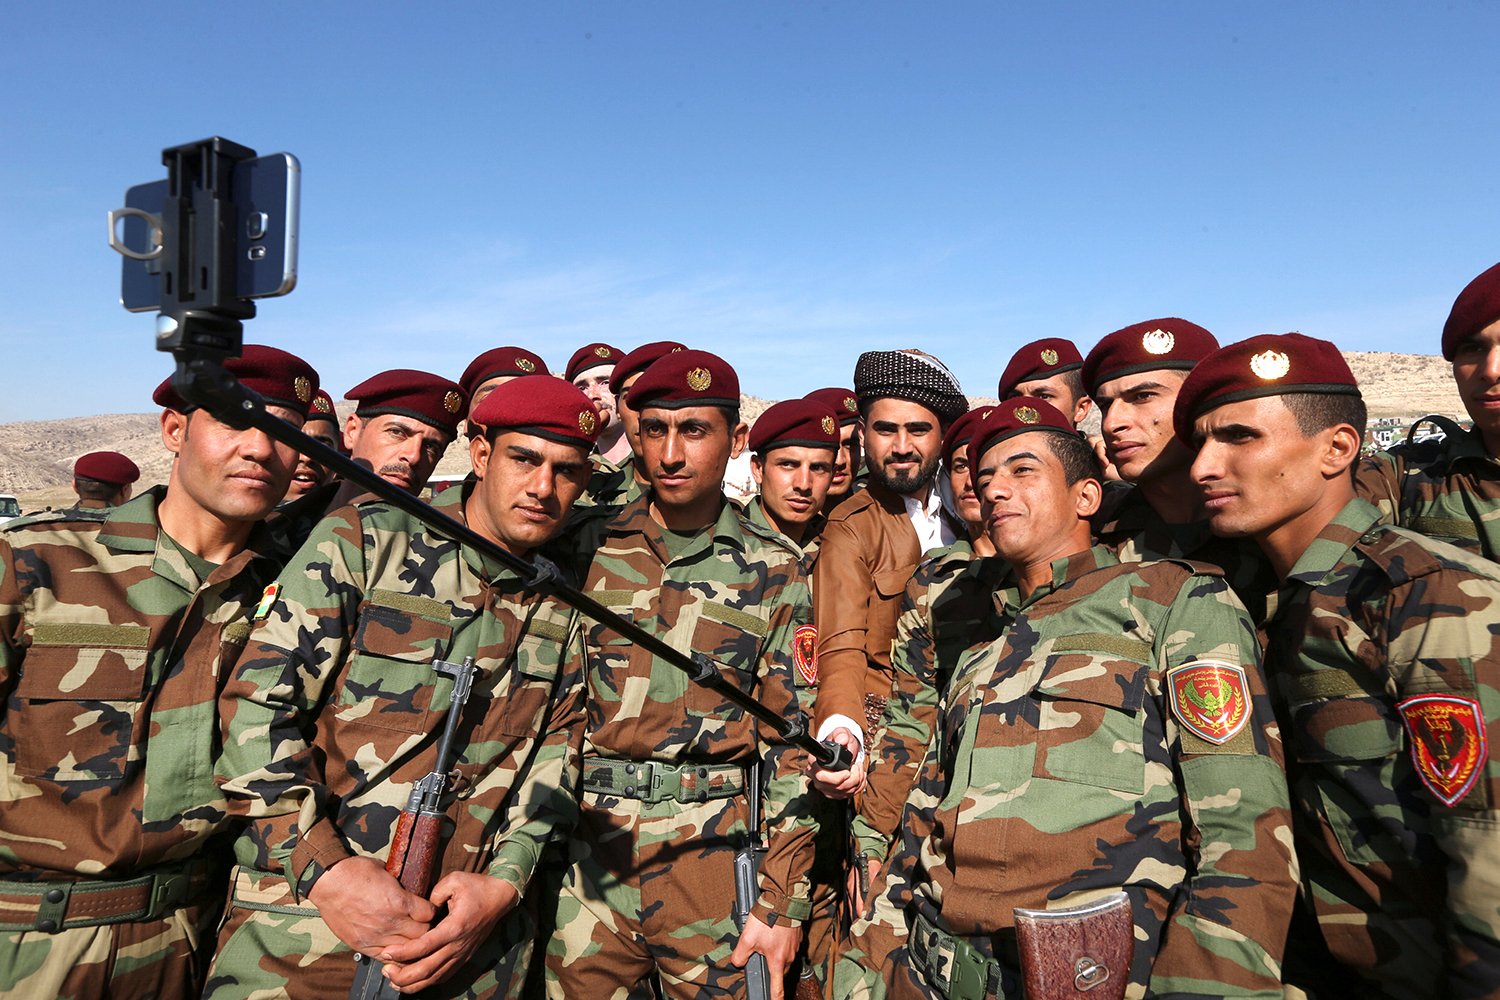 DUHOK 2017-02-07 A group of Arab soldiers who have joined Kurdish peshmerga forces take a selfie picture during a graduation ceremony at a training camp in Duhok province, Iraq, February 7, 2017. REUTERS/Ari Jalal TPX IMAGES OF THE DAY Photo: / REUTERS / TT / kod 72000